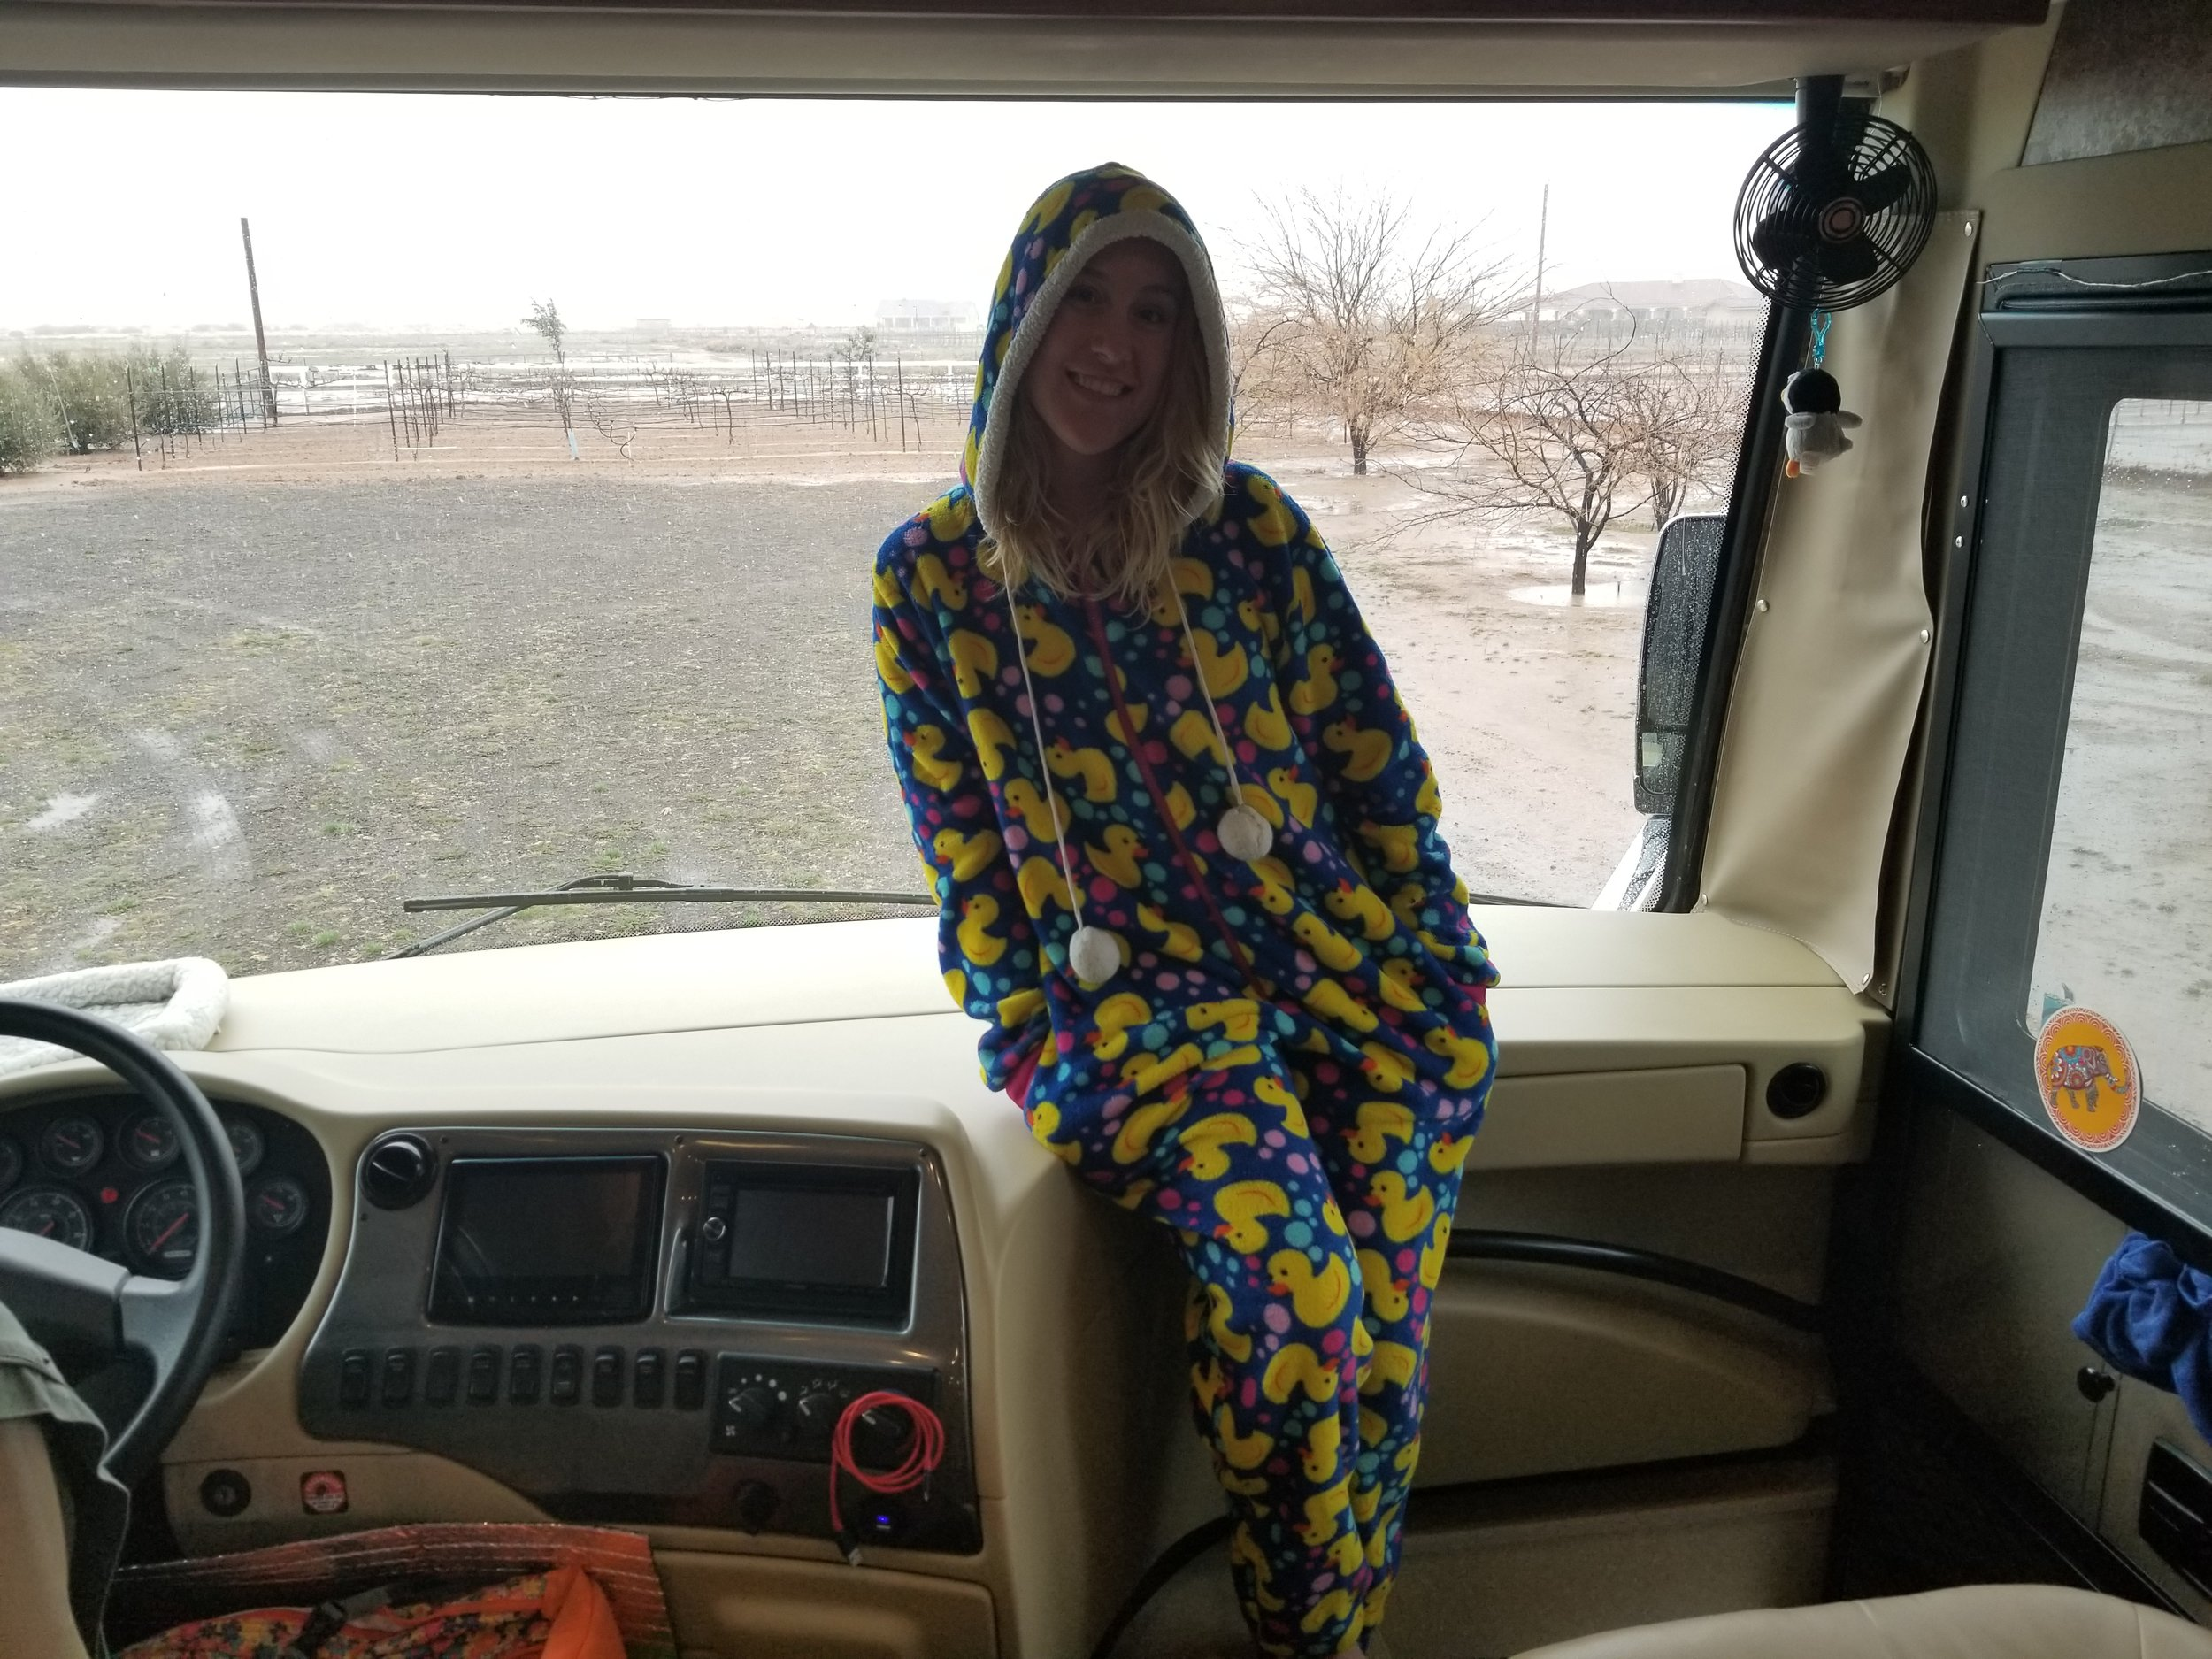 Sometimes you have to put your onesie on to stay warm